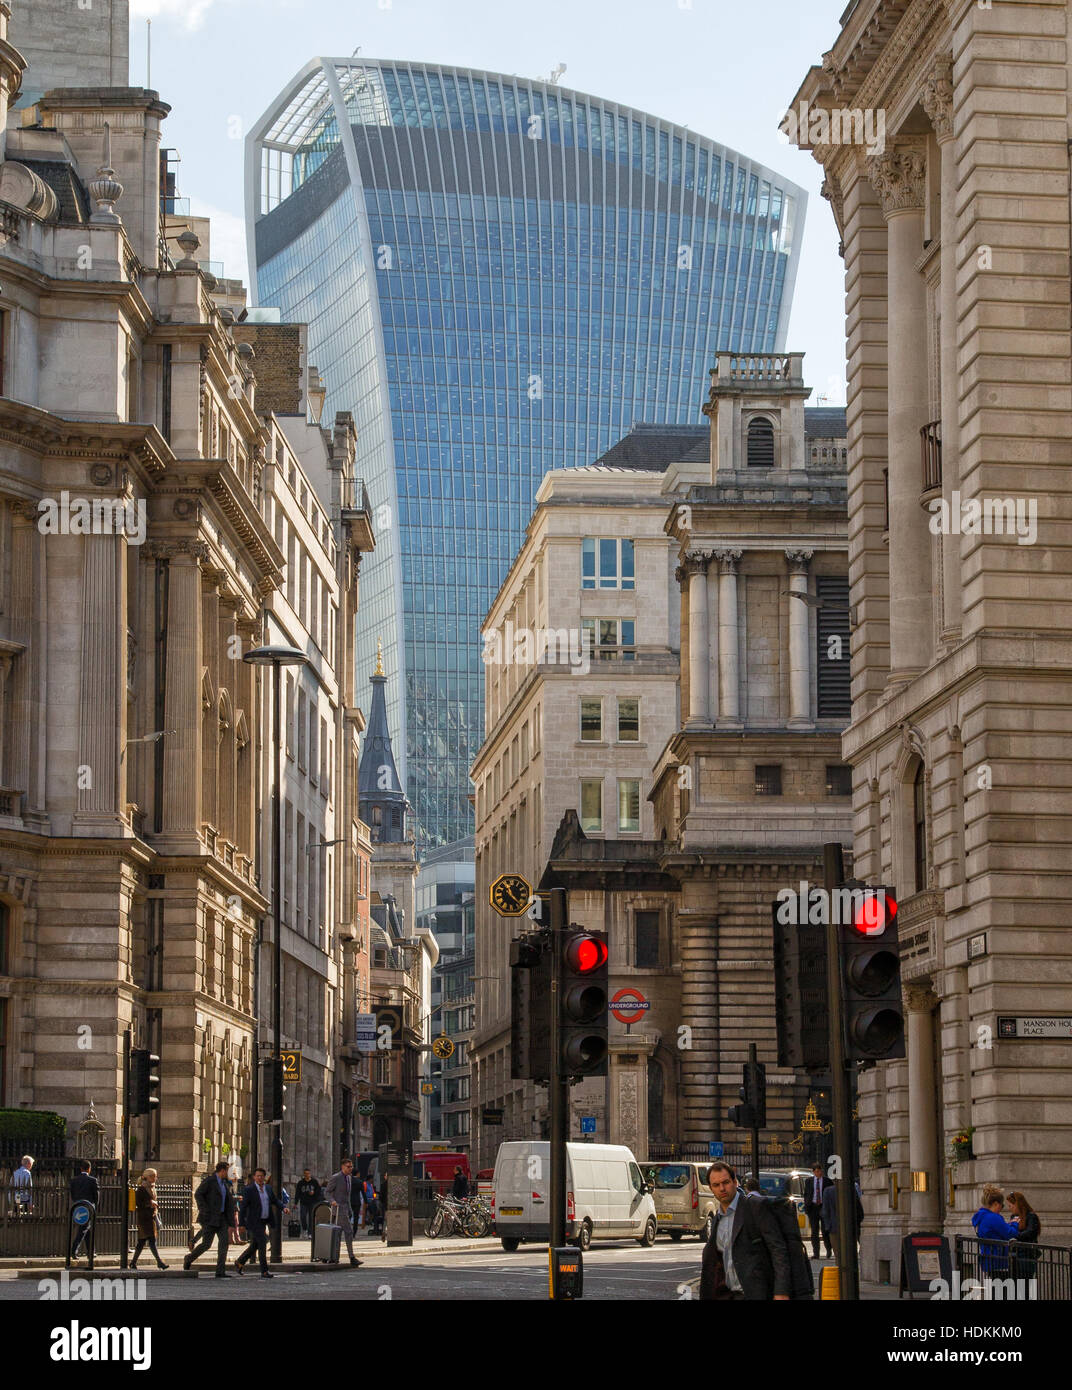 Contrasting architectural styles in the City of London with Walkie Talkie building at 20 Fenchurch Street dominating - Stock Image